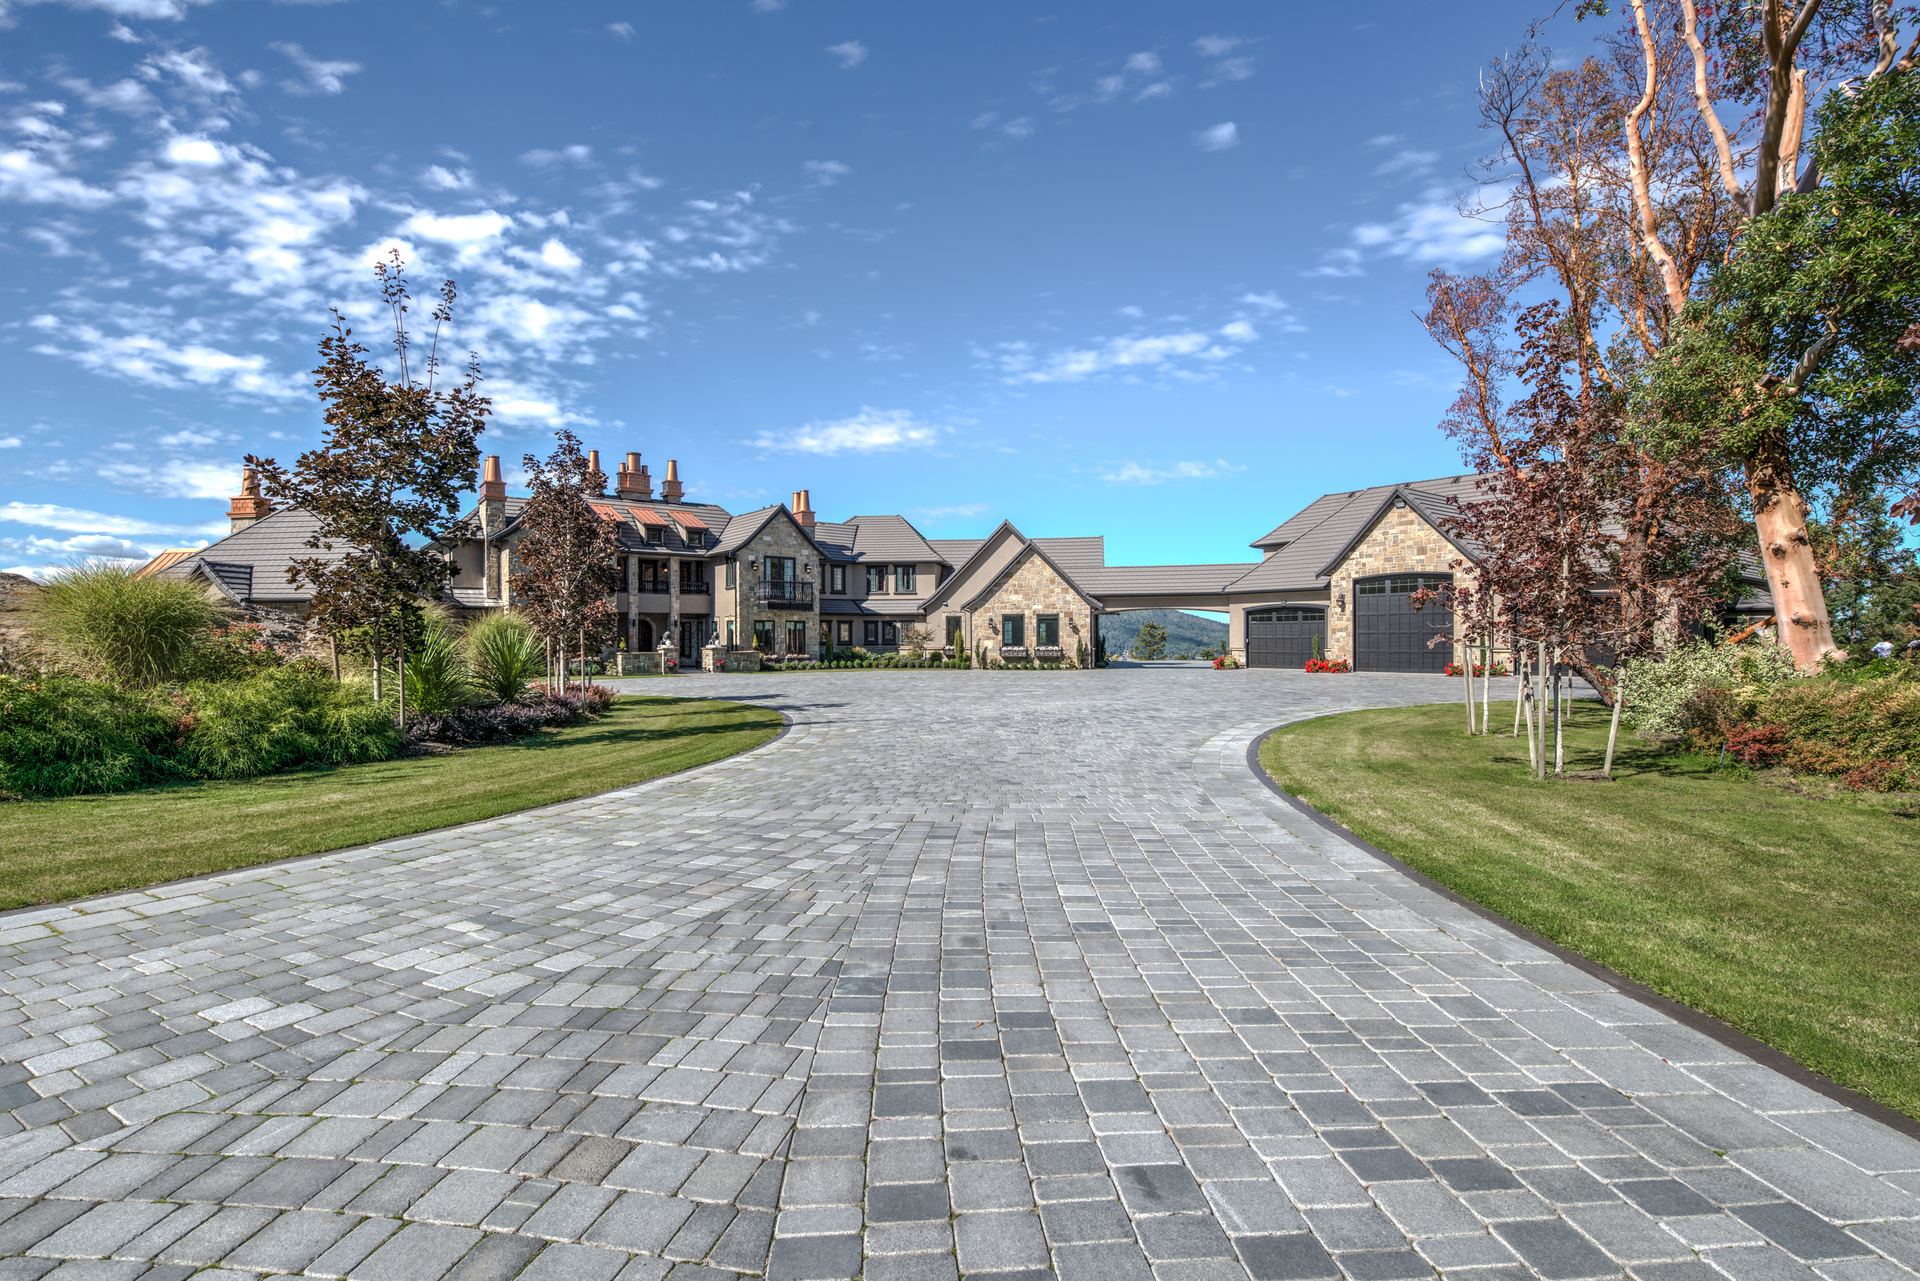 Stone Drive at 6720 Willis Road, Victoria Point,